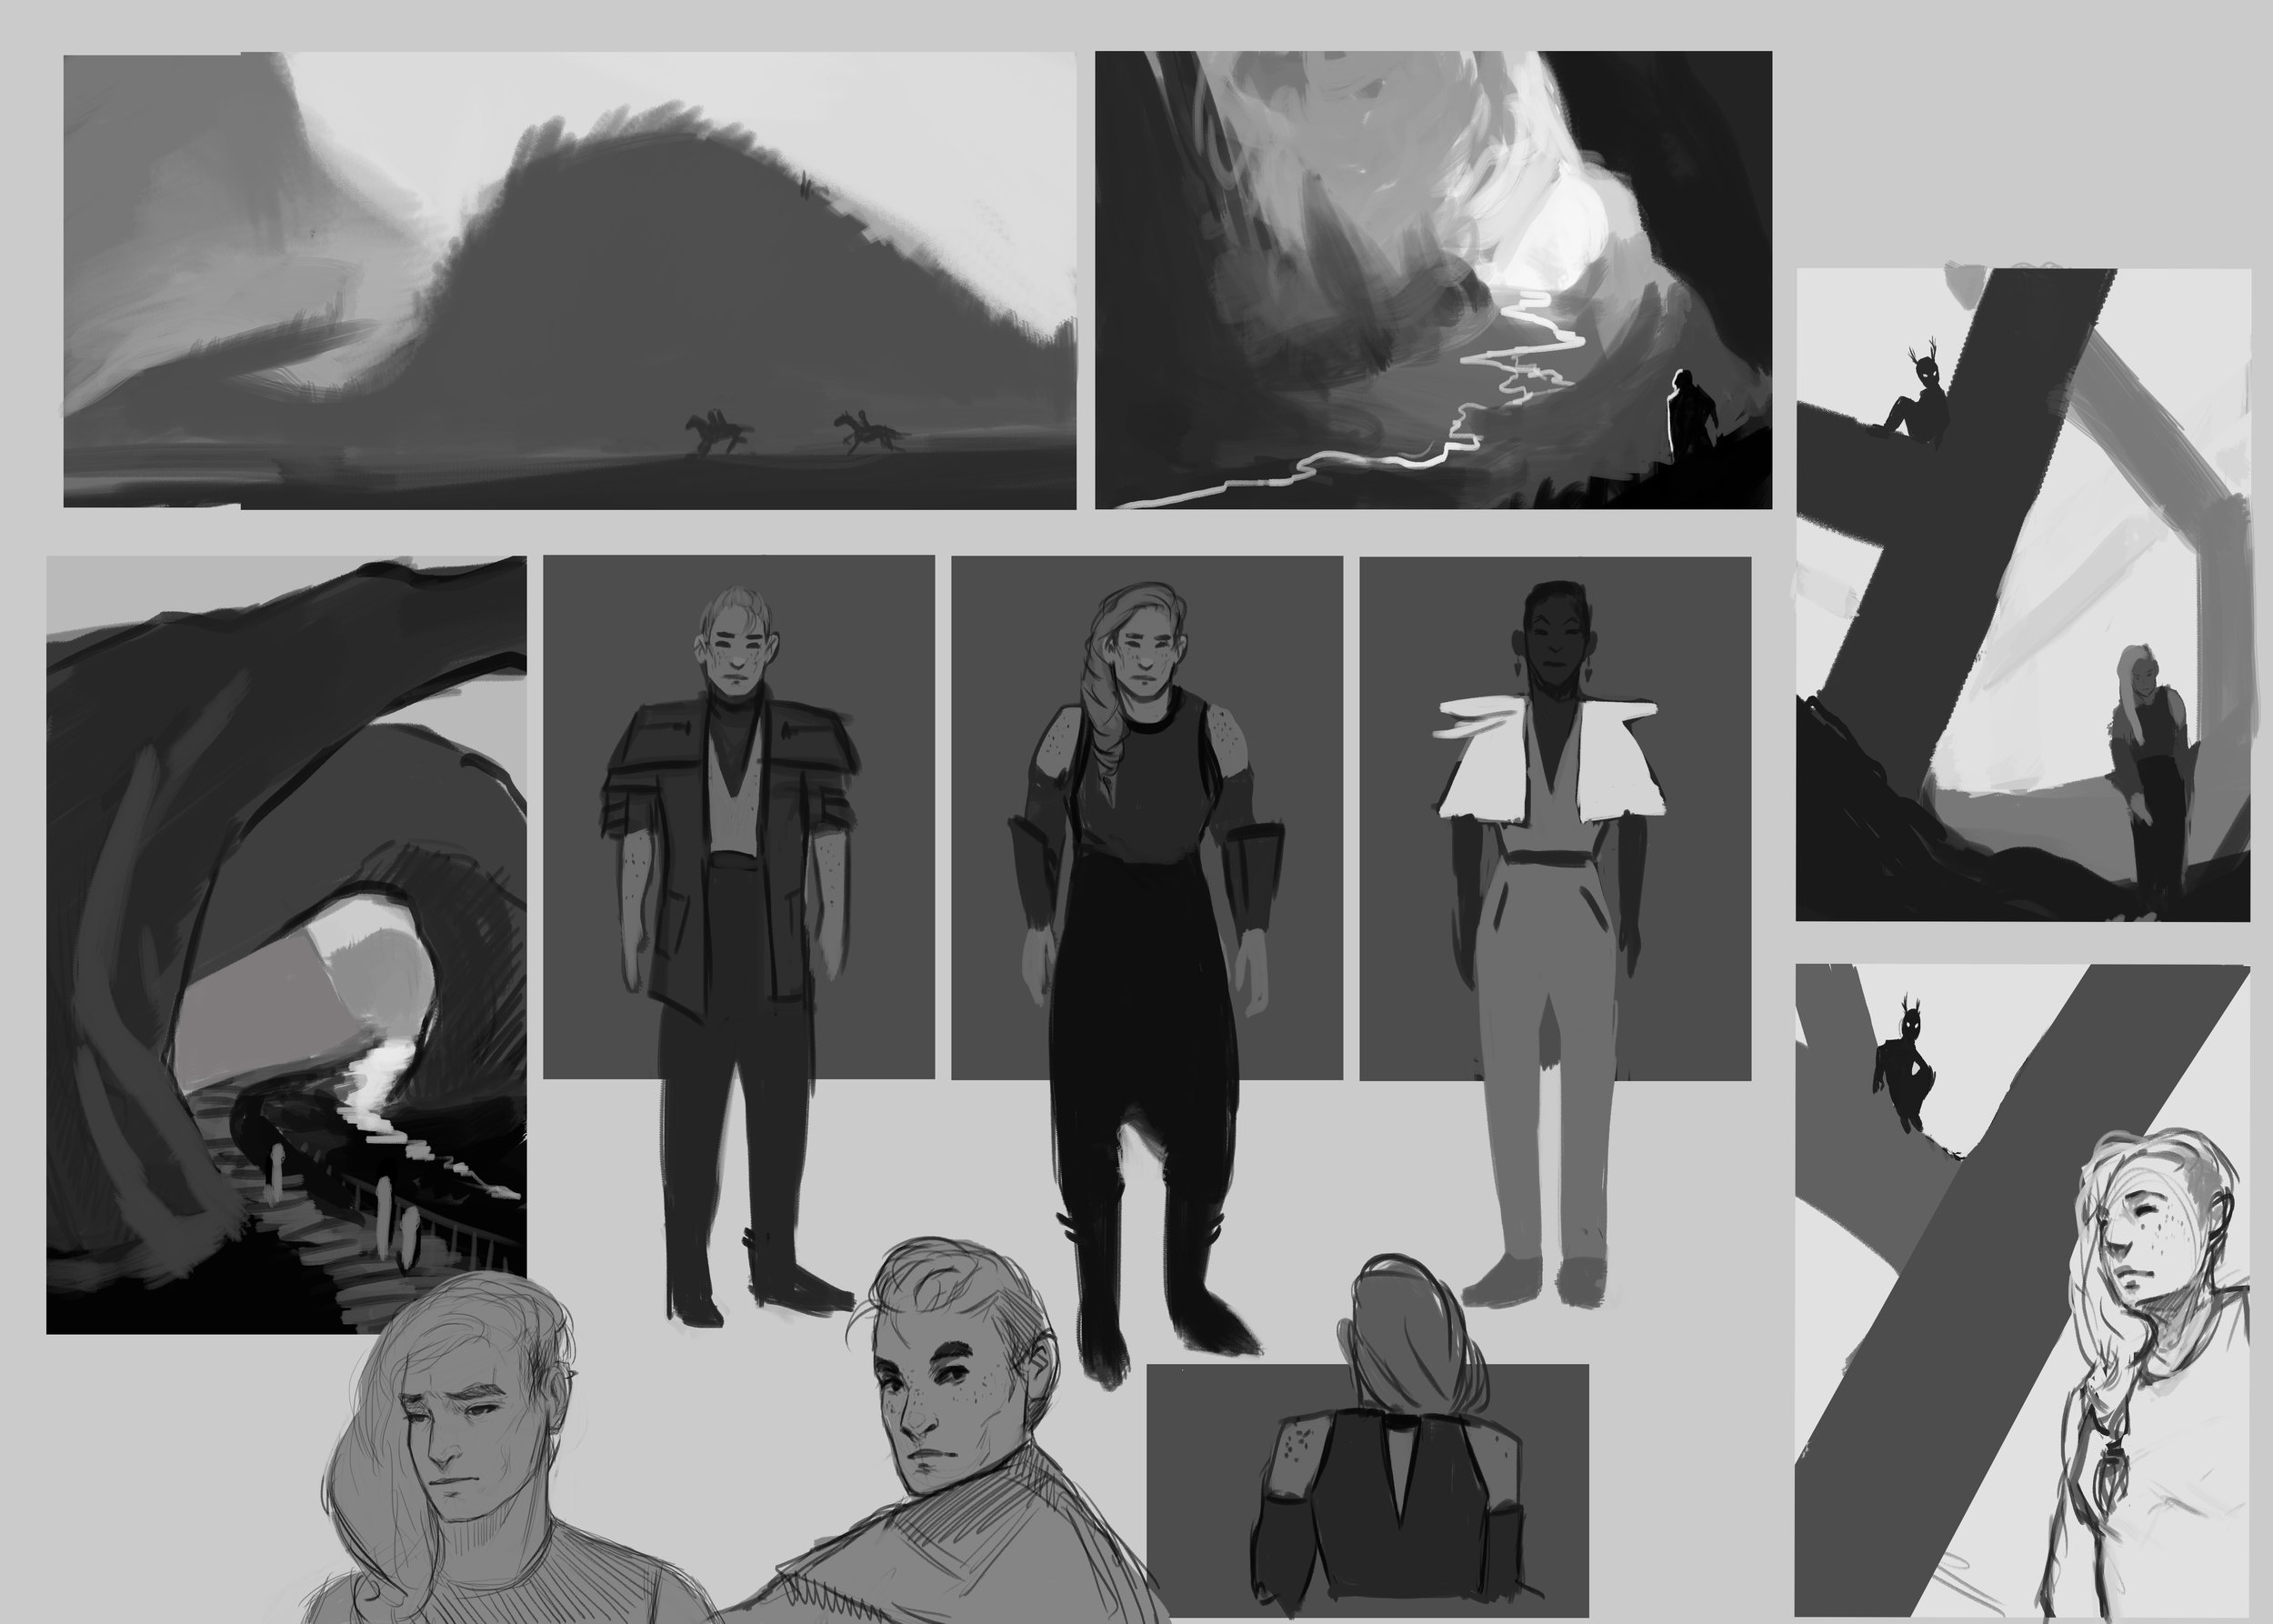 Landscape development and character sketches